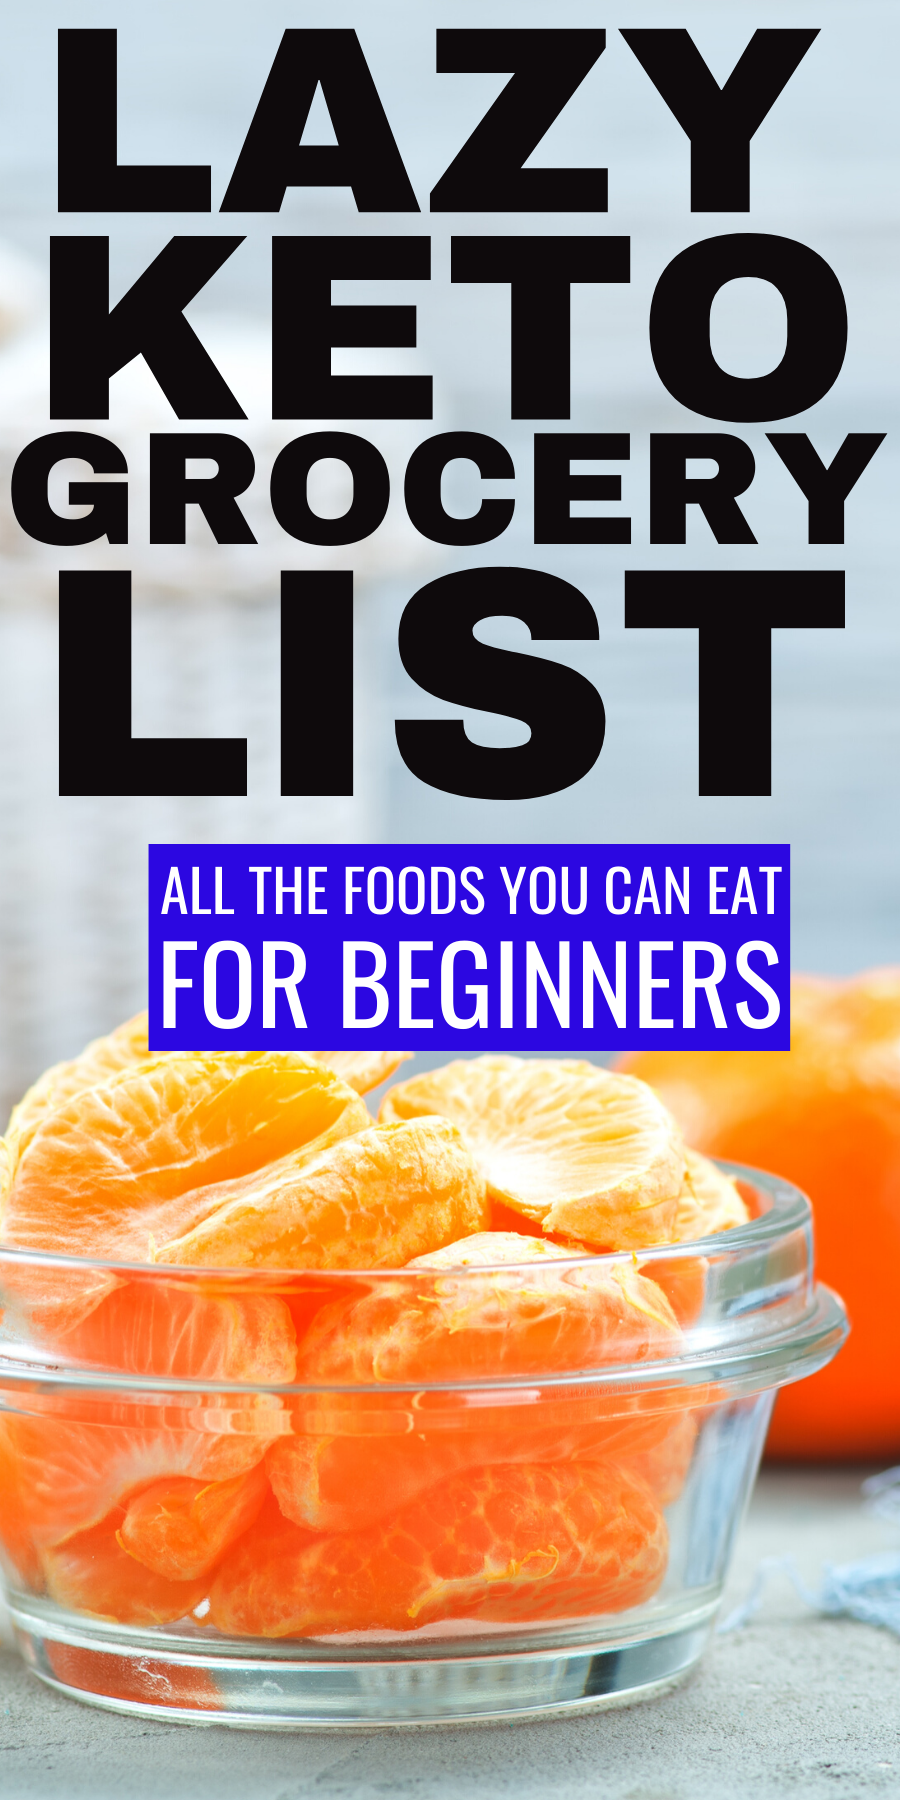 Lazy Keto Grocery List With Food Lists For Beginners - Oh So Foodie